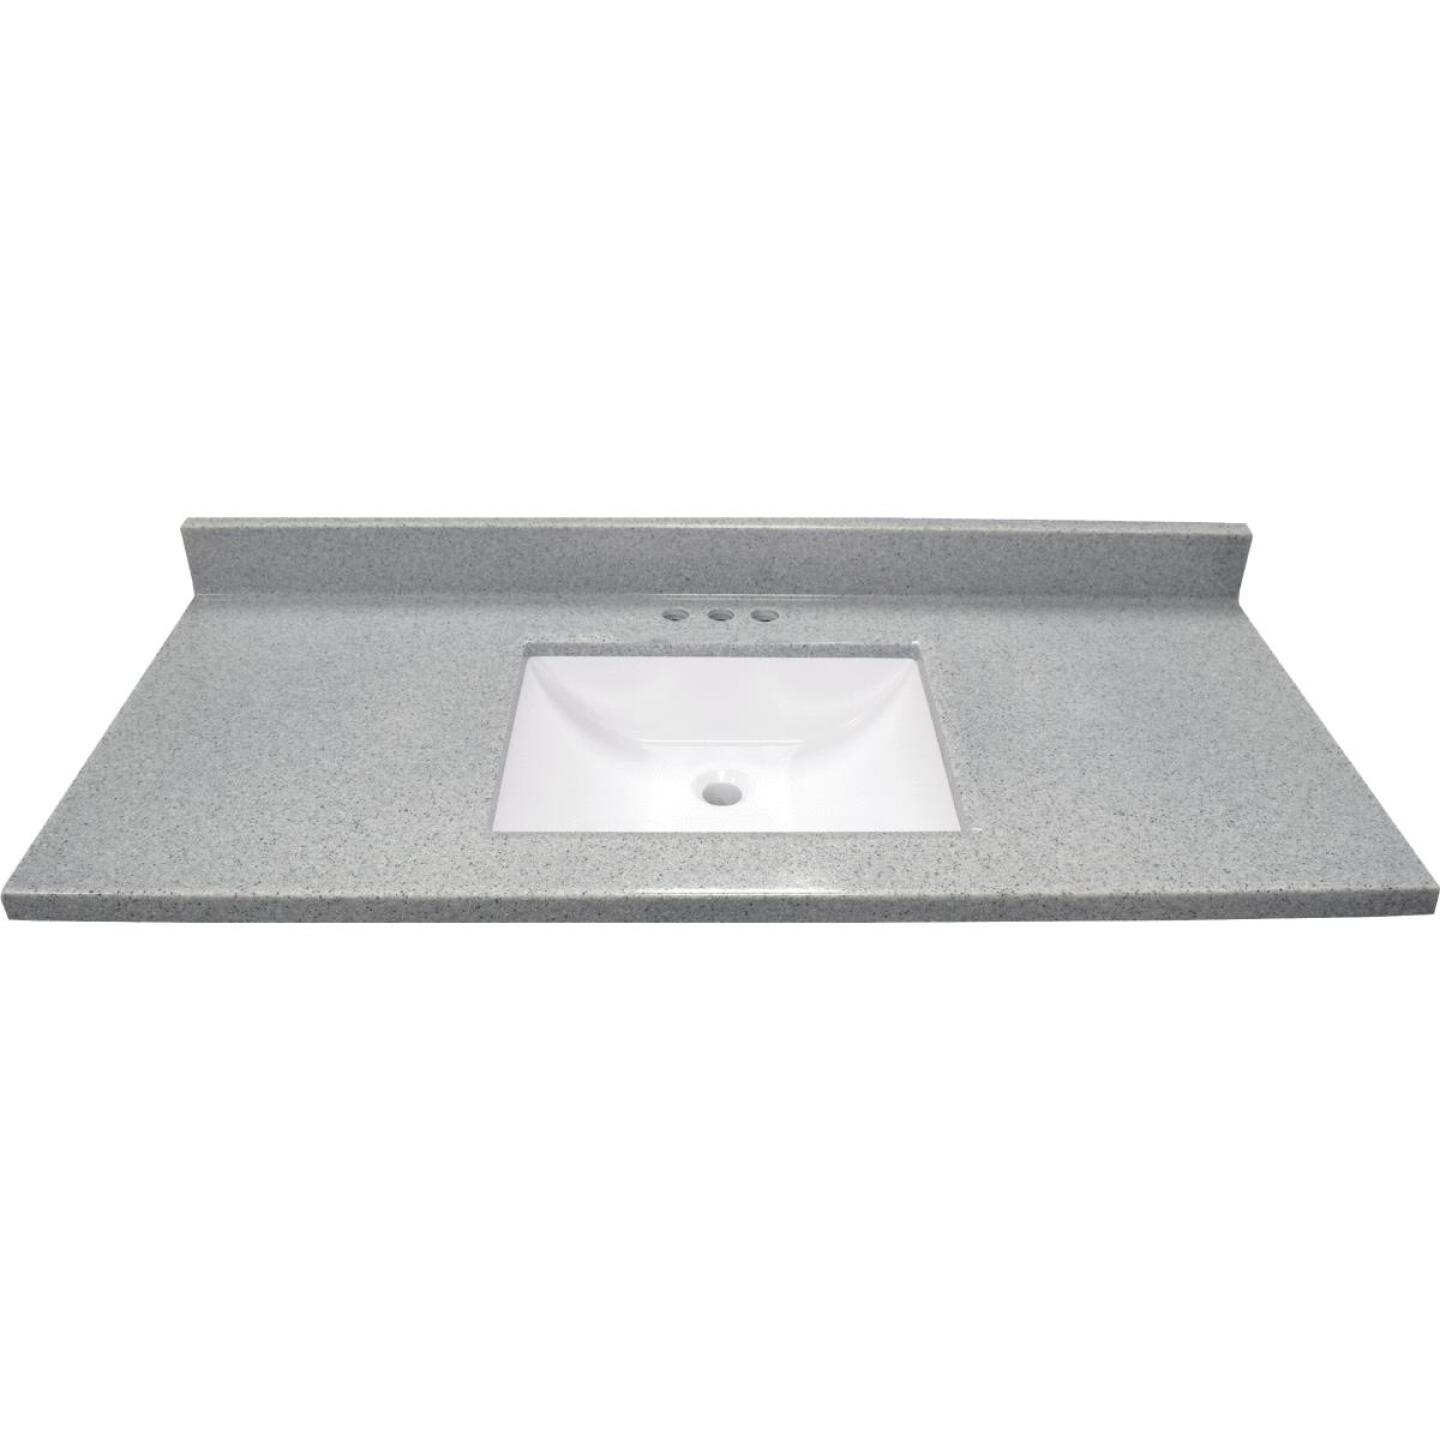 Modular Vanity Tops 49 In. W x 22 In. D Pewter Cultured Marble Vanity Top with Rectangular Wave Bowl Image 2